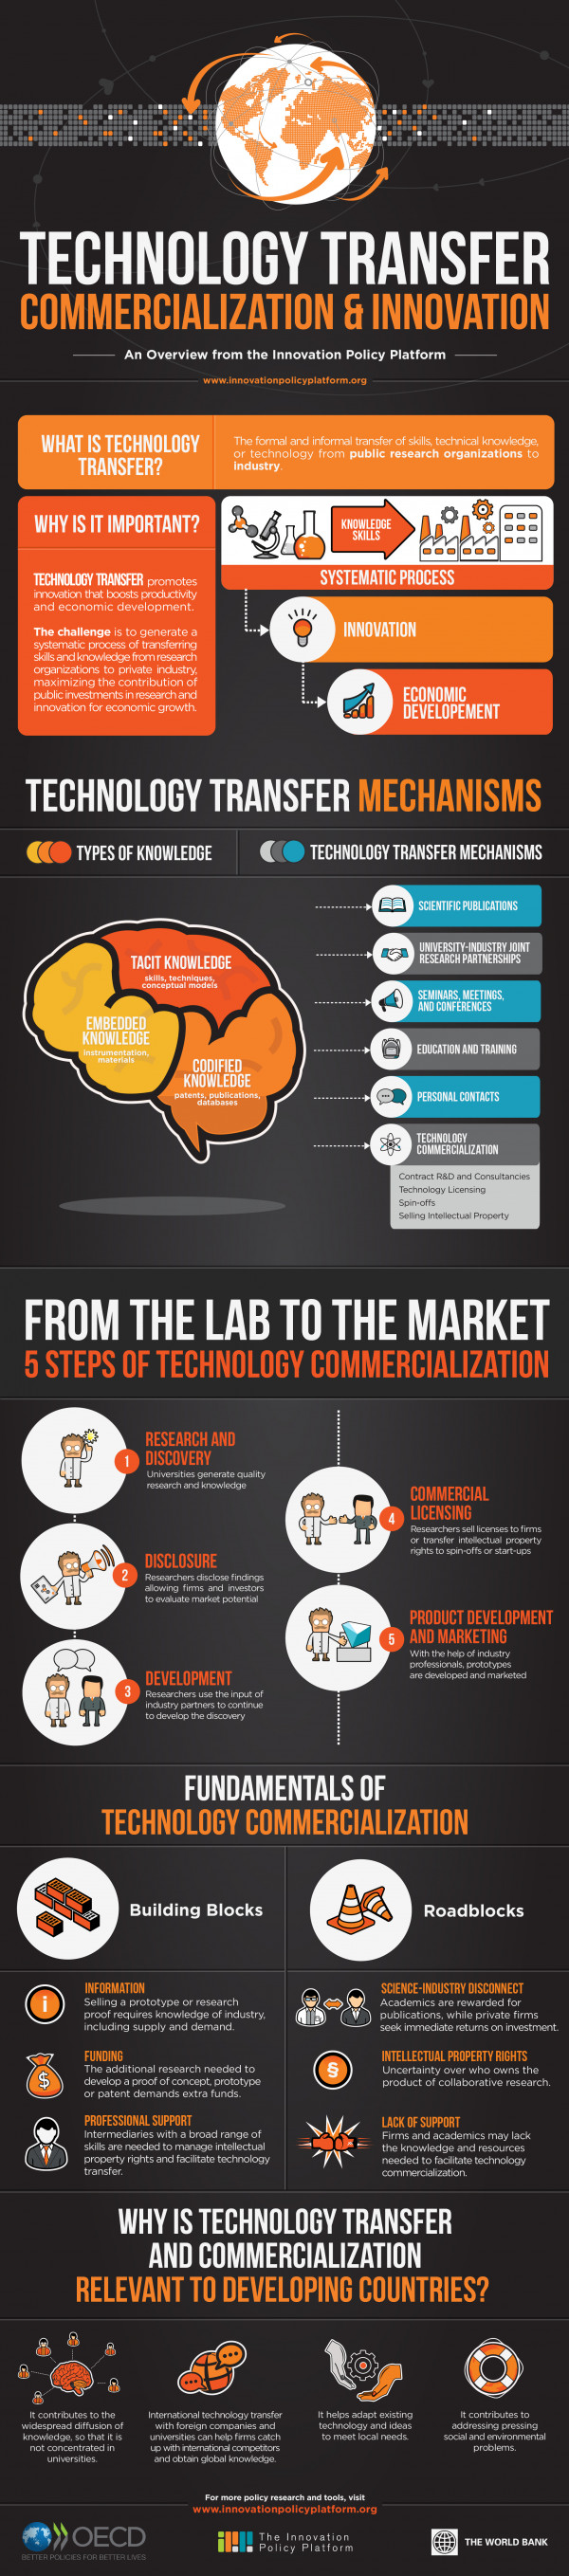 Technology Transfer: Commercialization and Innovation